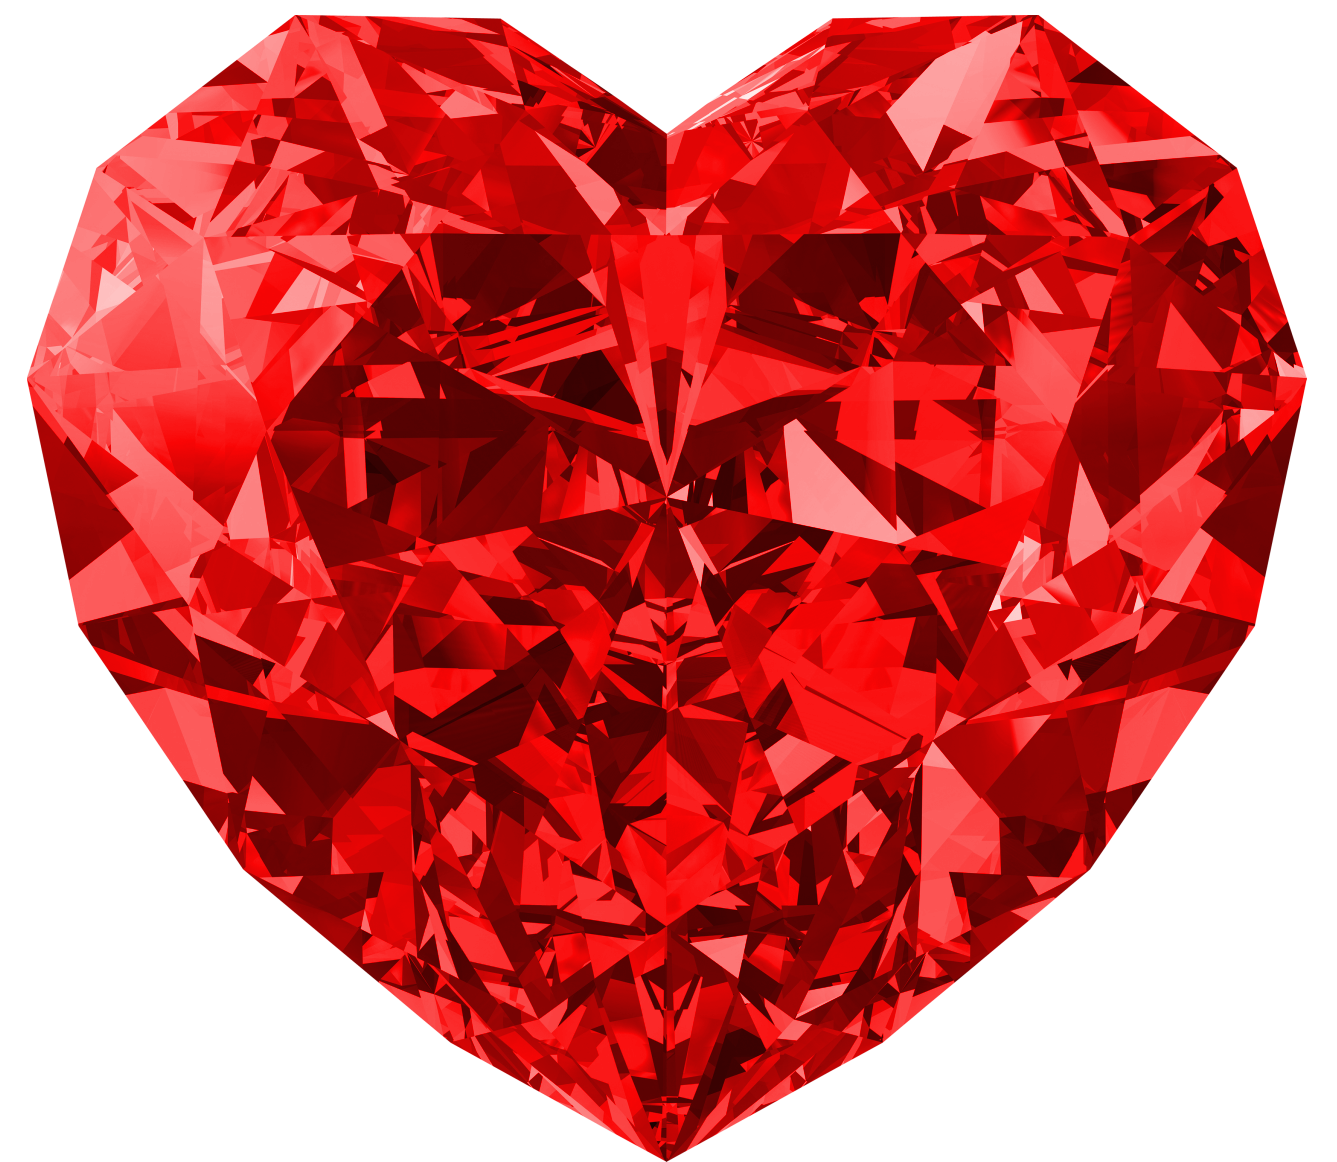 Crystal clipart large. Red diamond heart png